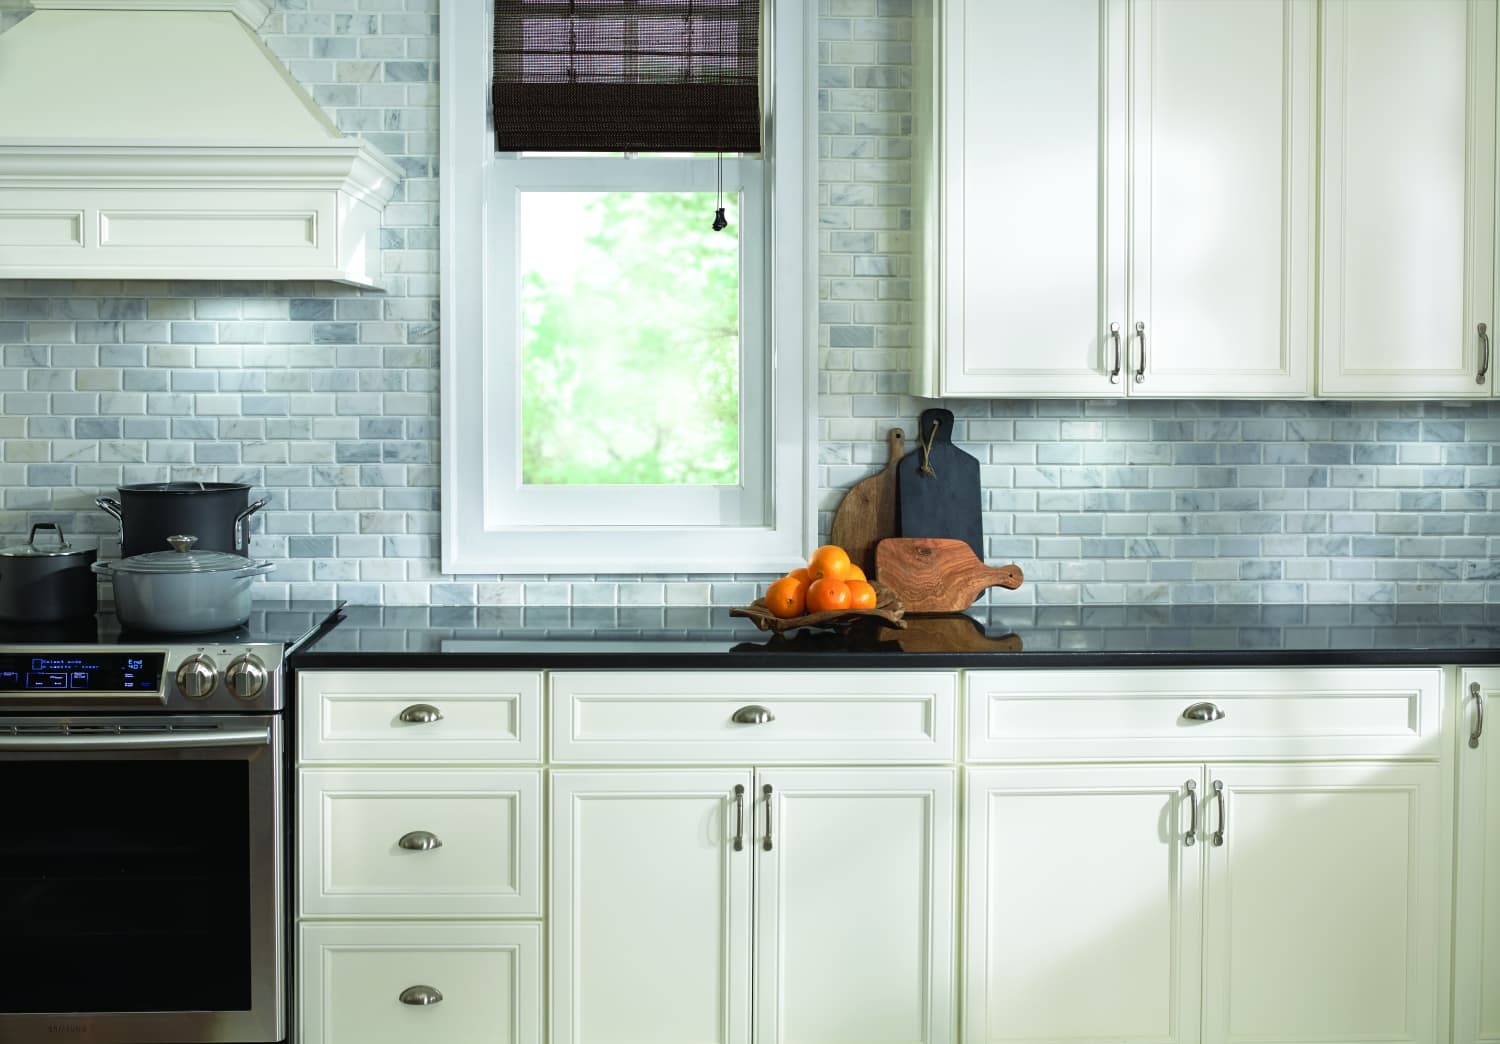 How to Make Over Your Kitchen by Changing Just One Feature